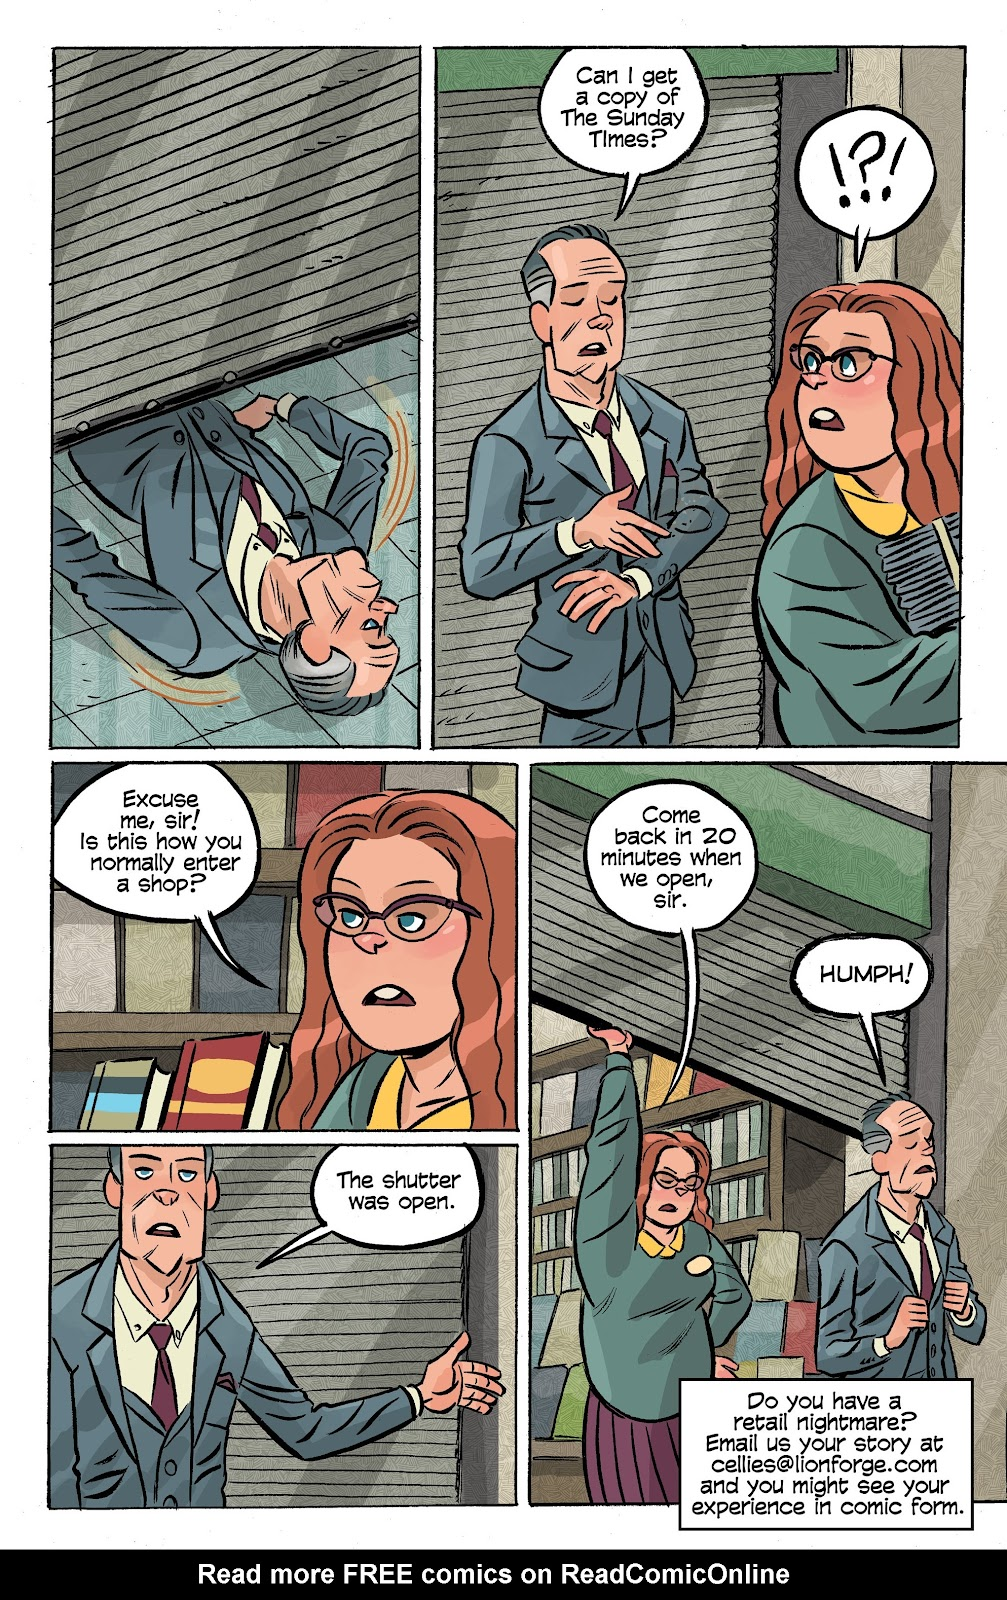 Read online Cellies comic -  Issue #7 - 26